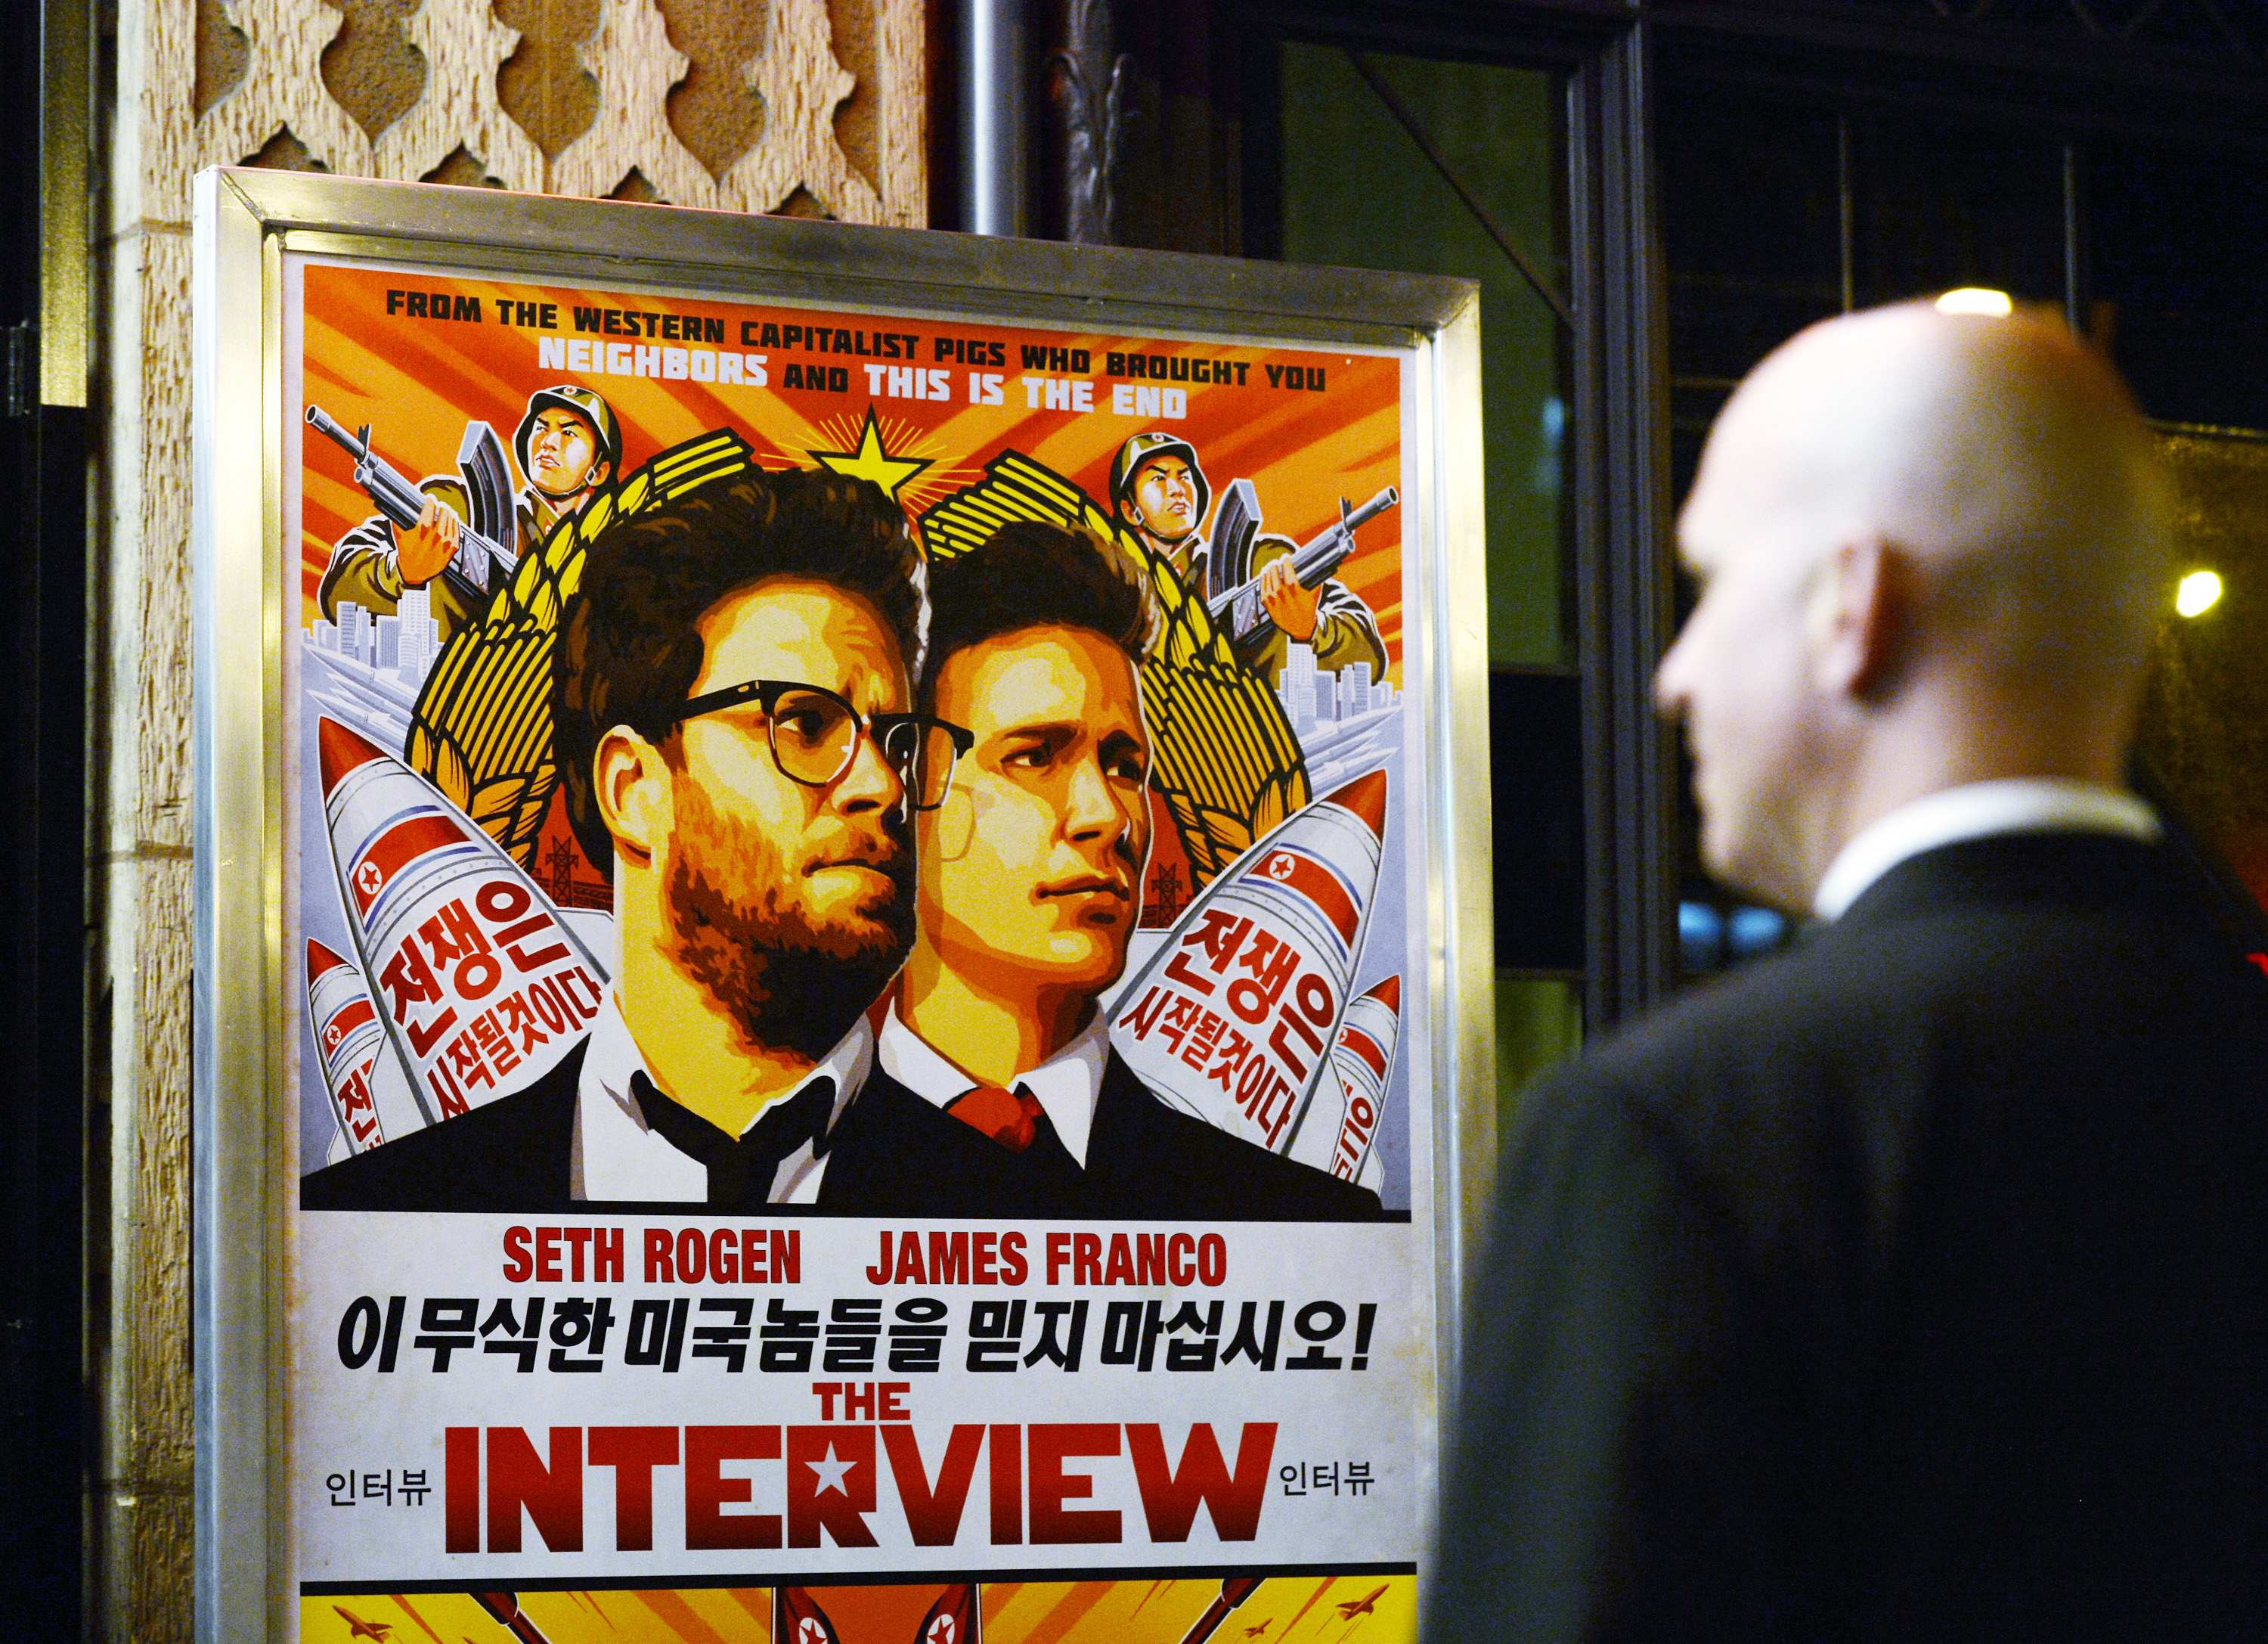 New York premiere of North Korea comedy canceled after threats